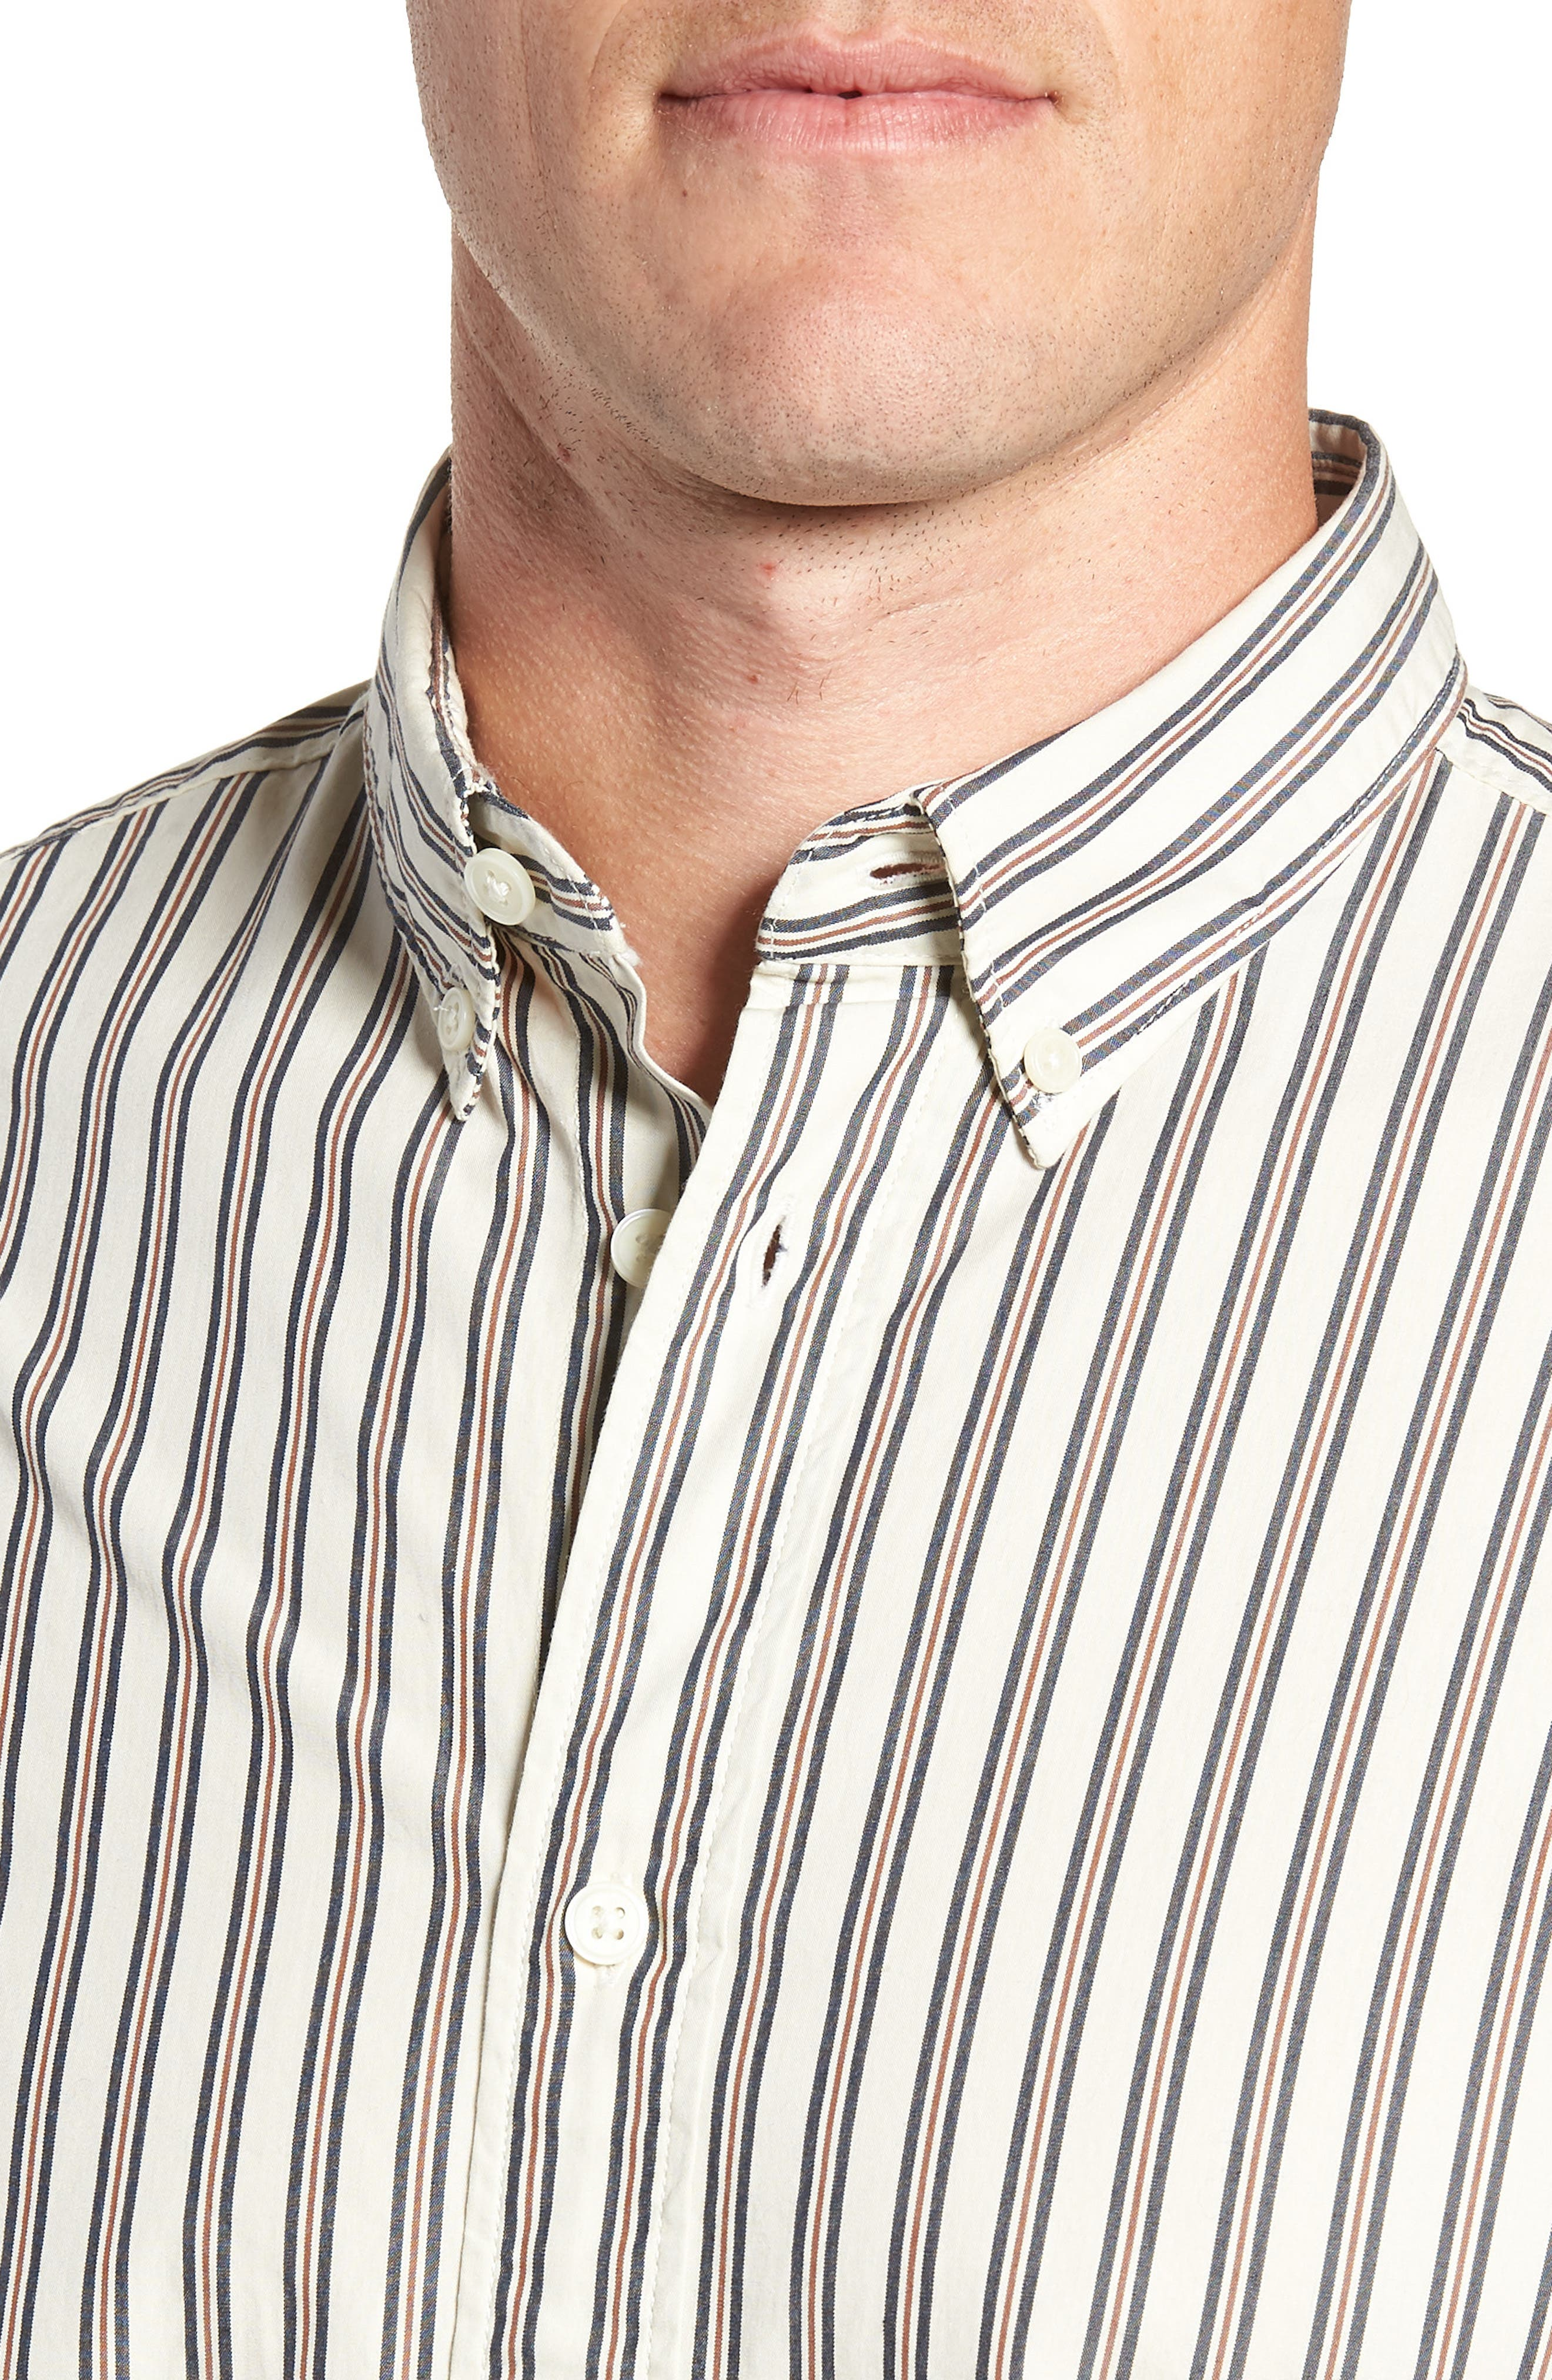 Carl Regular Fit Stripe Sport Shirt,                             Alternate thumbnail 2, color,                             OYSTER GREY STRIPES